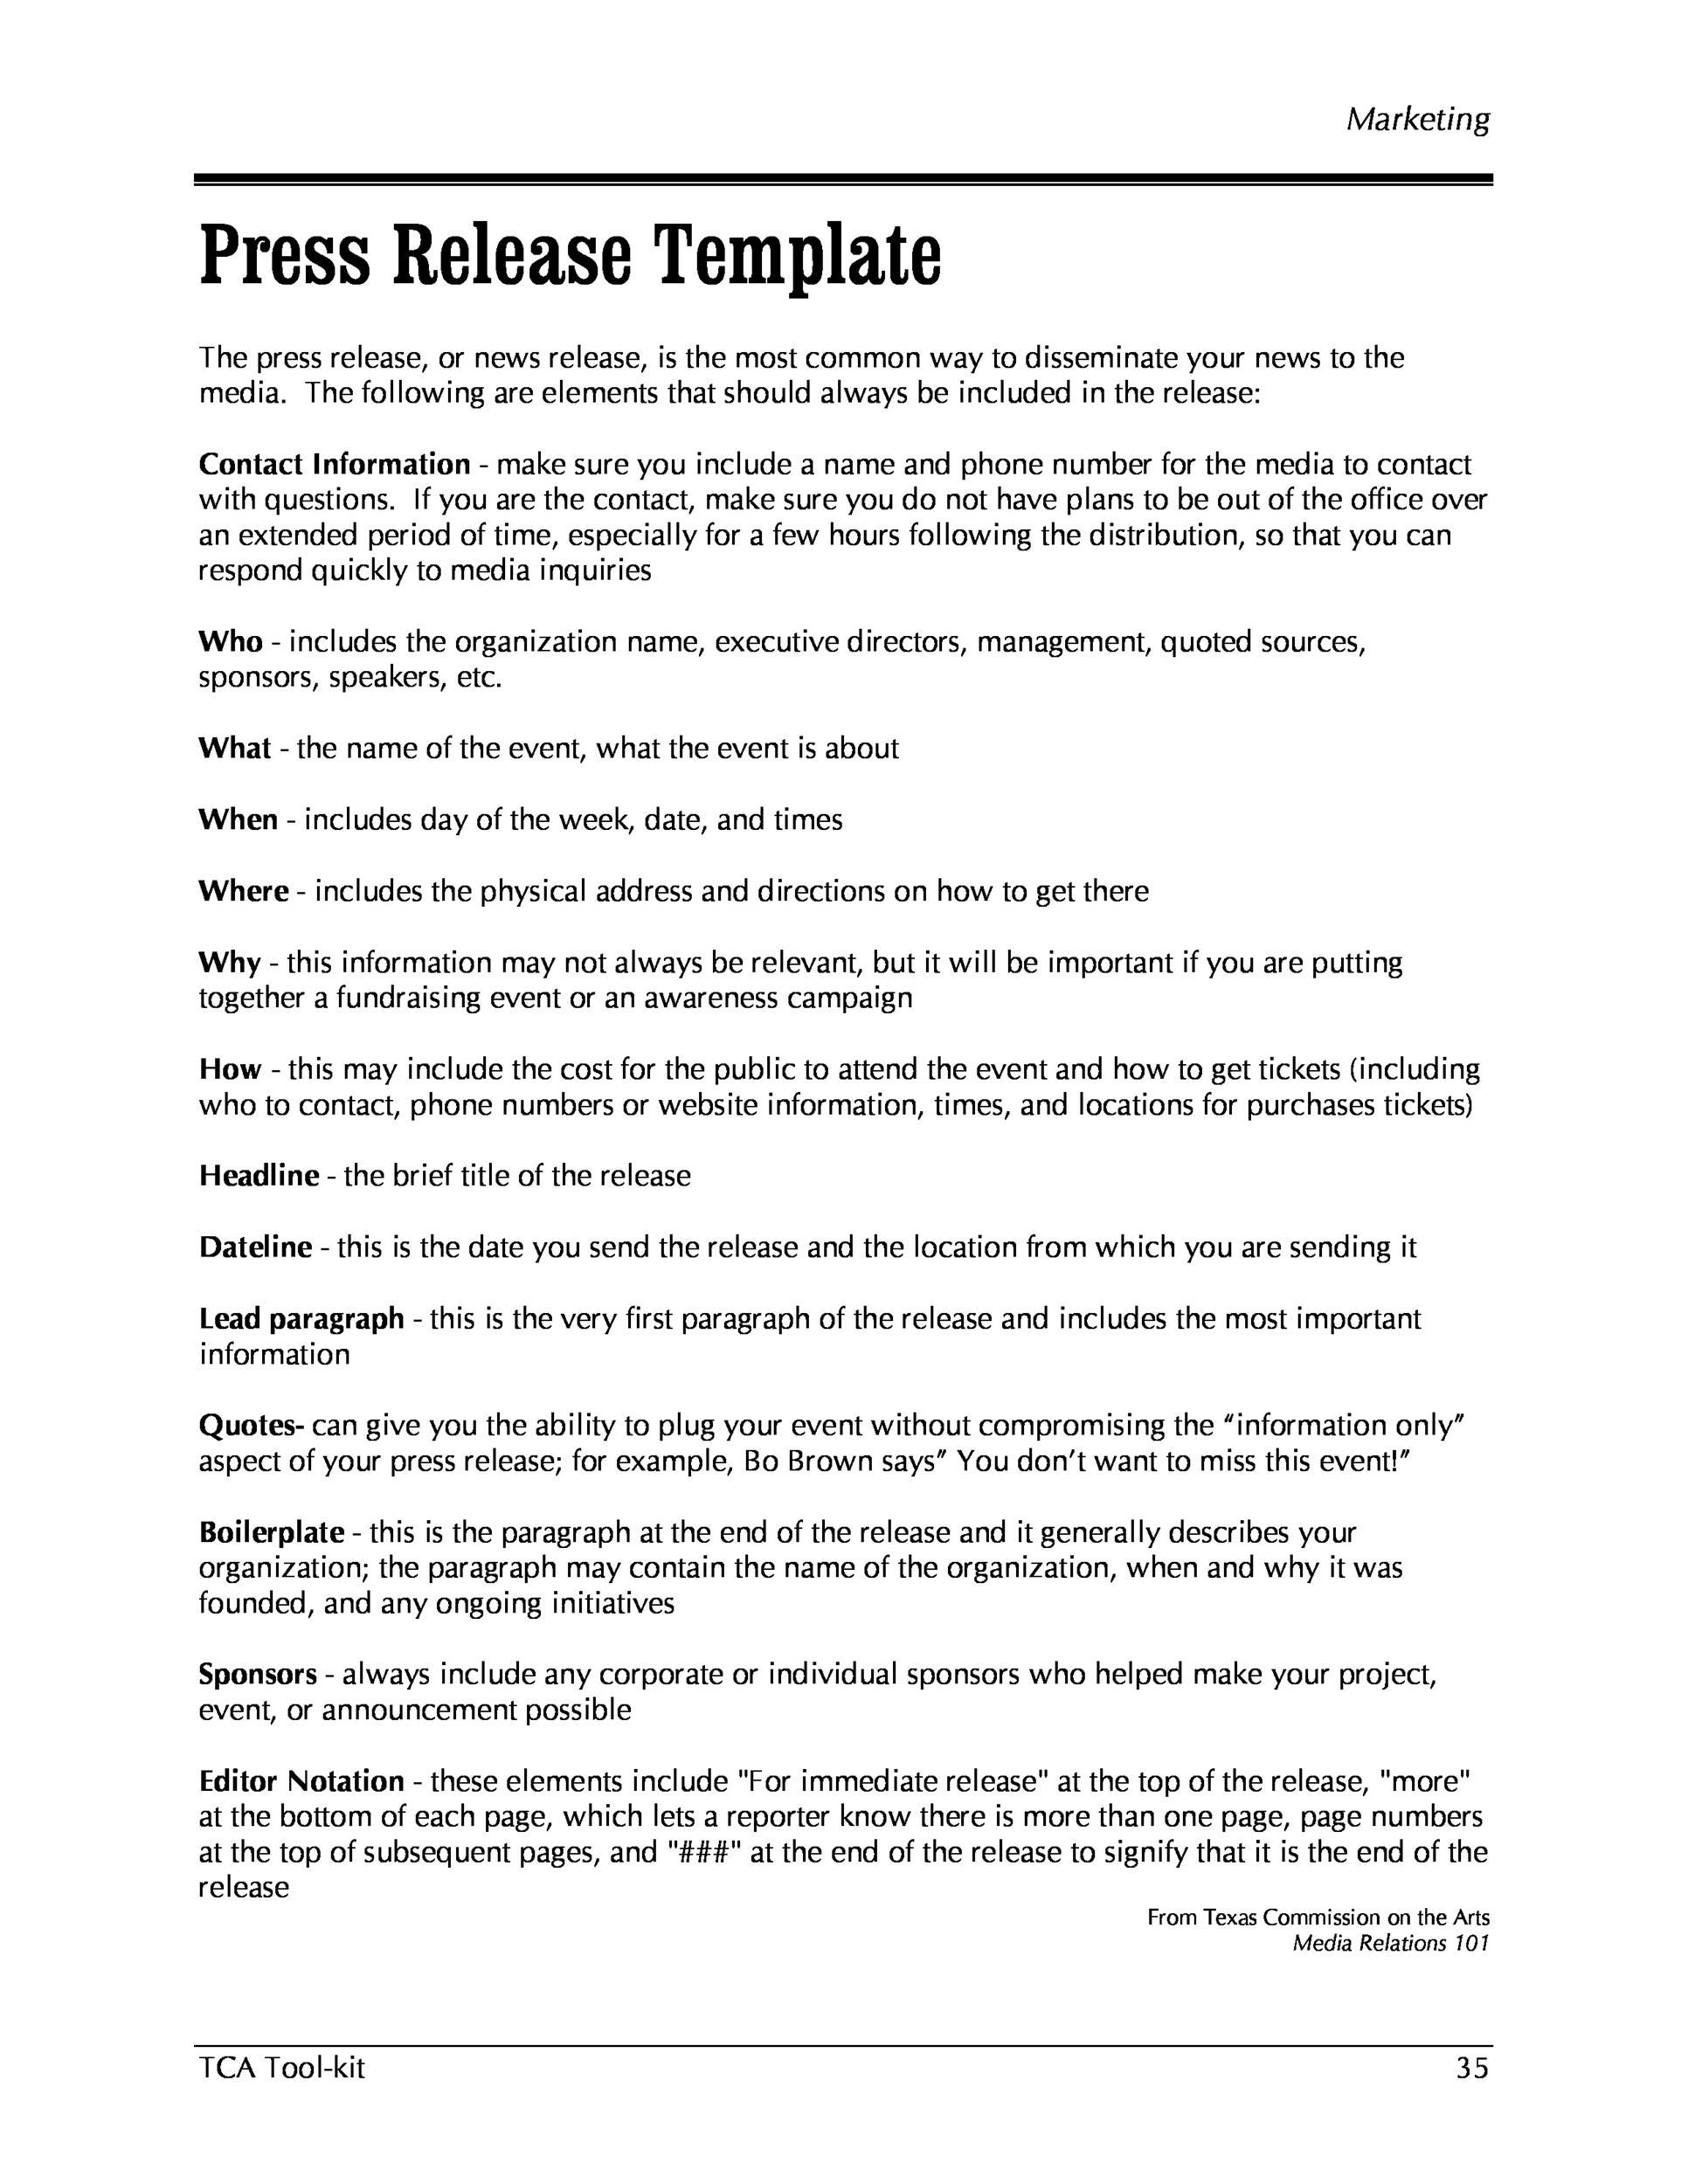 008 Fascinating Pres Release Template Doc Sample  Format ExampleFull